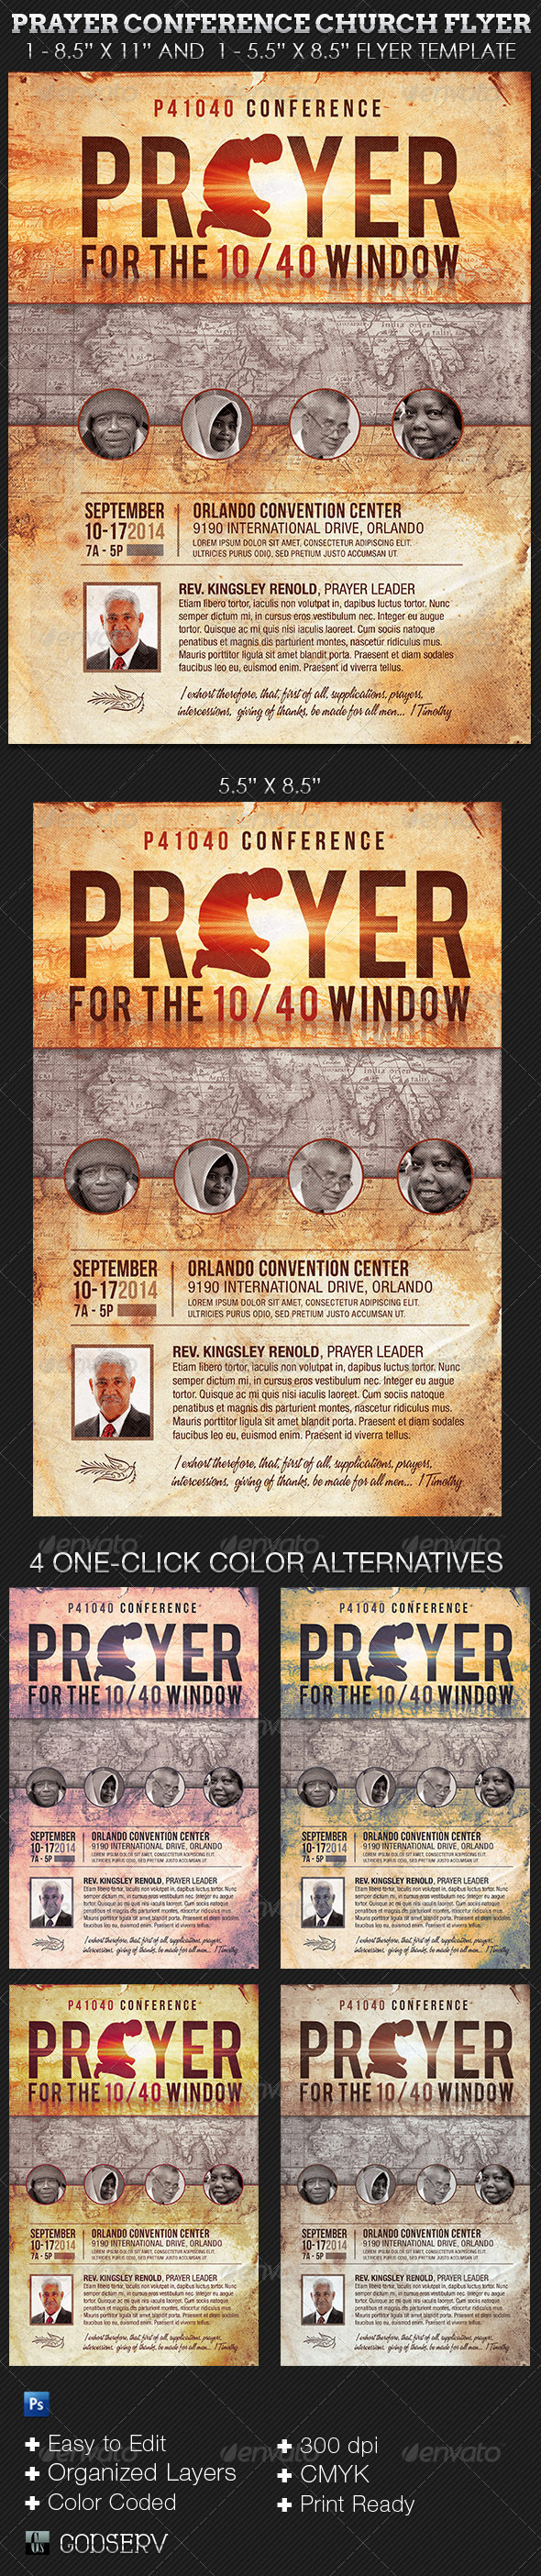 prayer conference church flyer template on behance